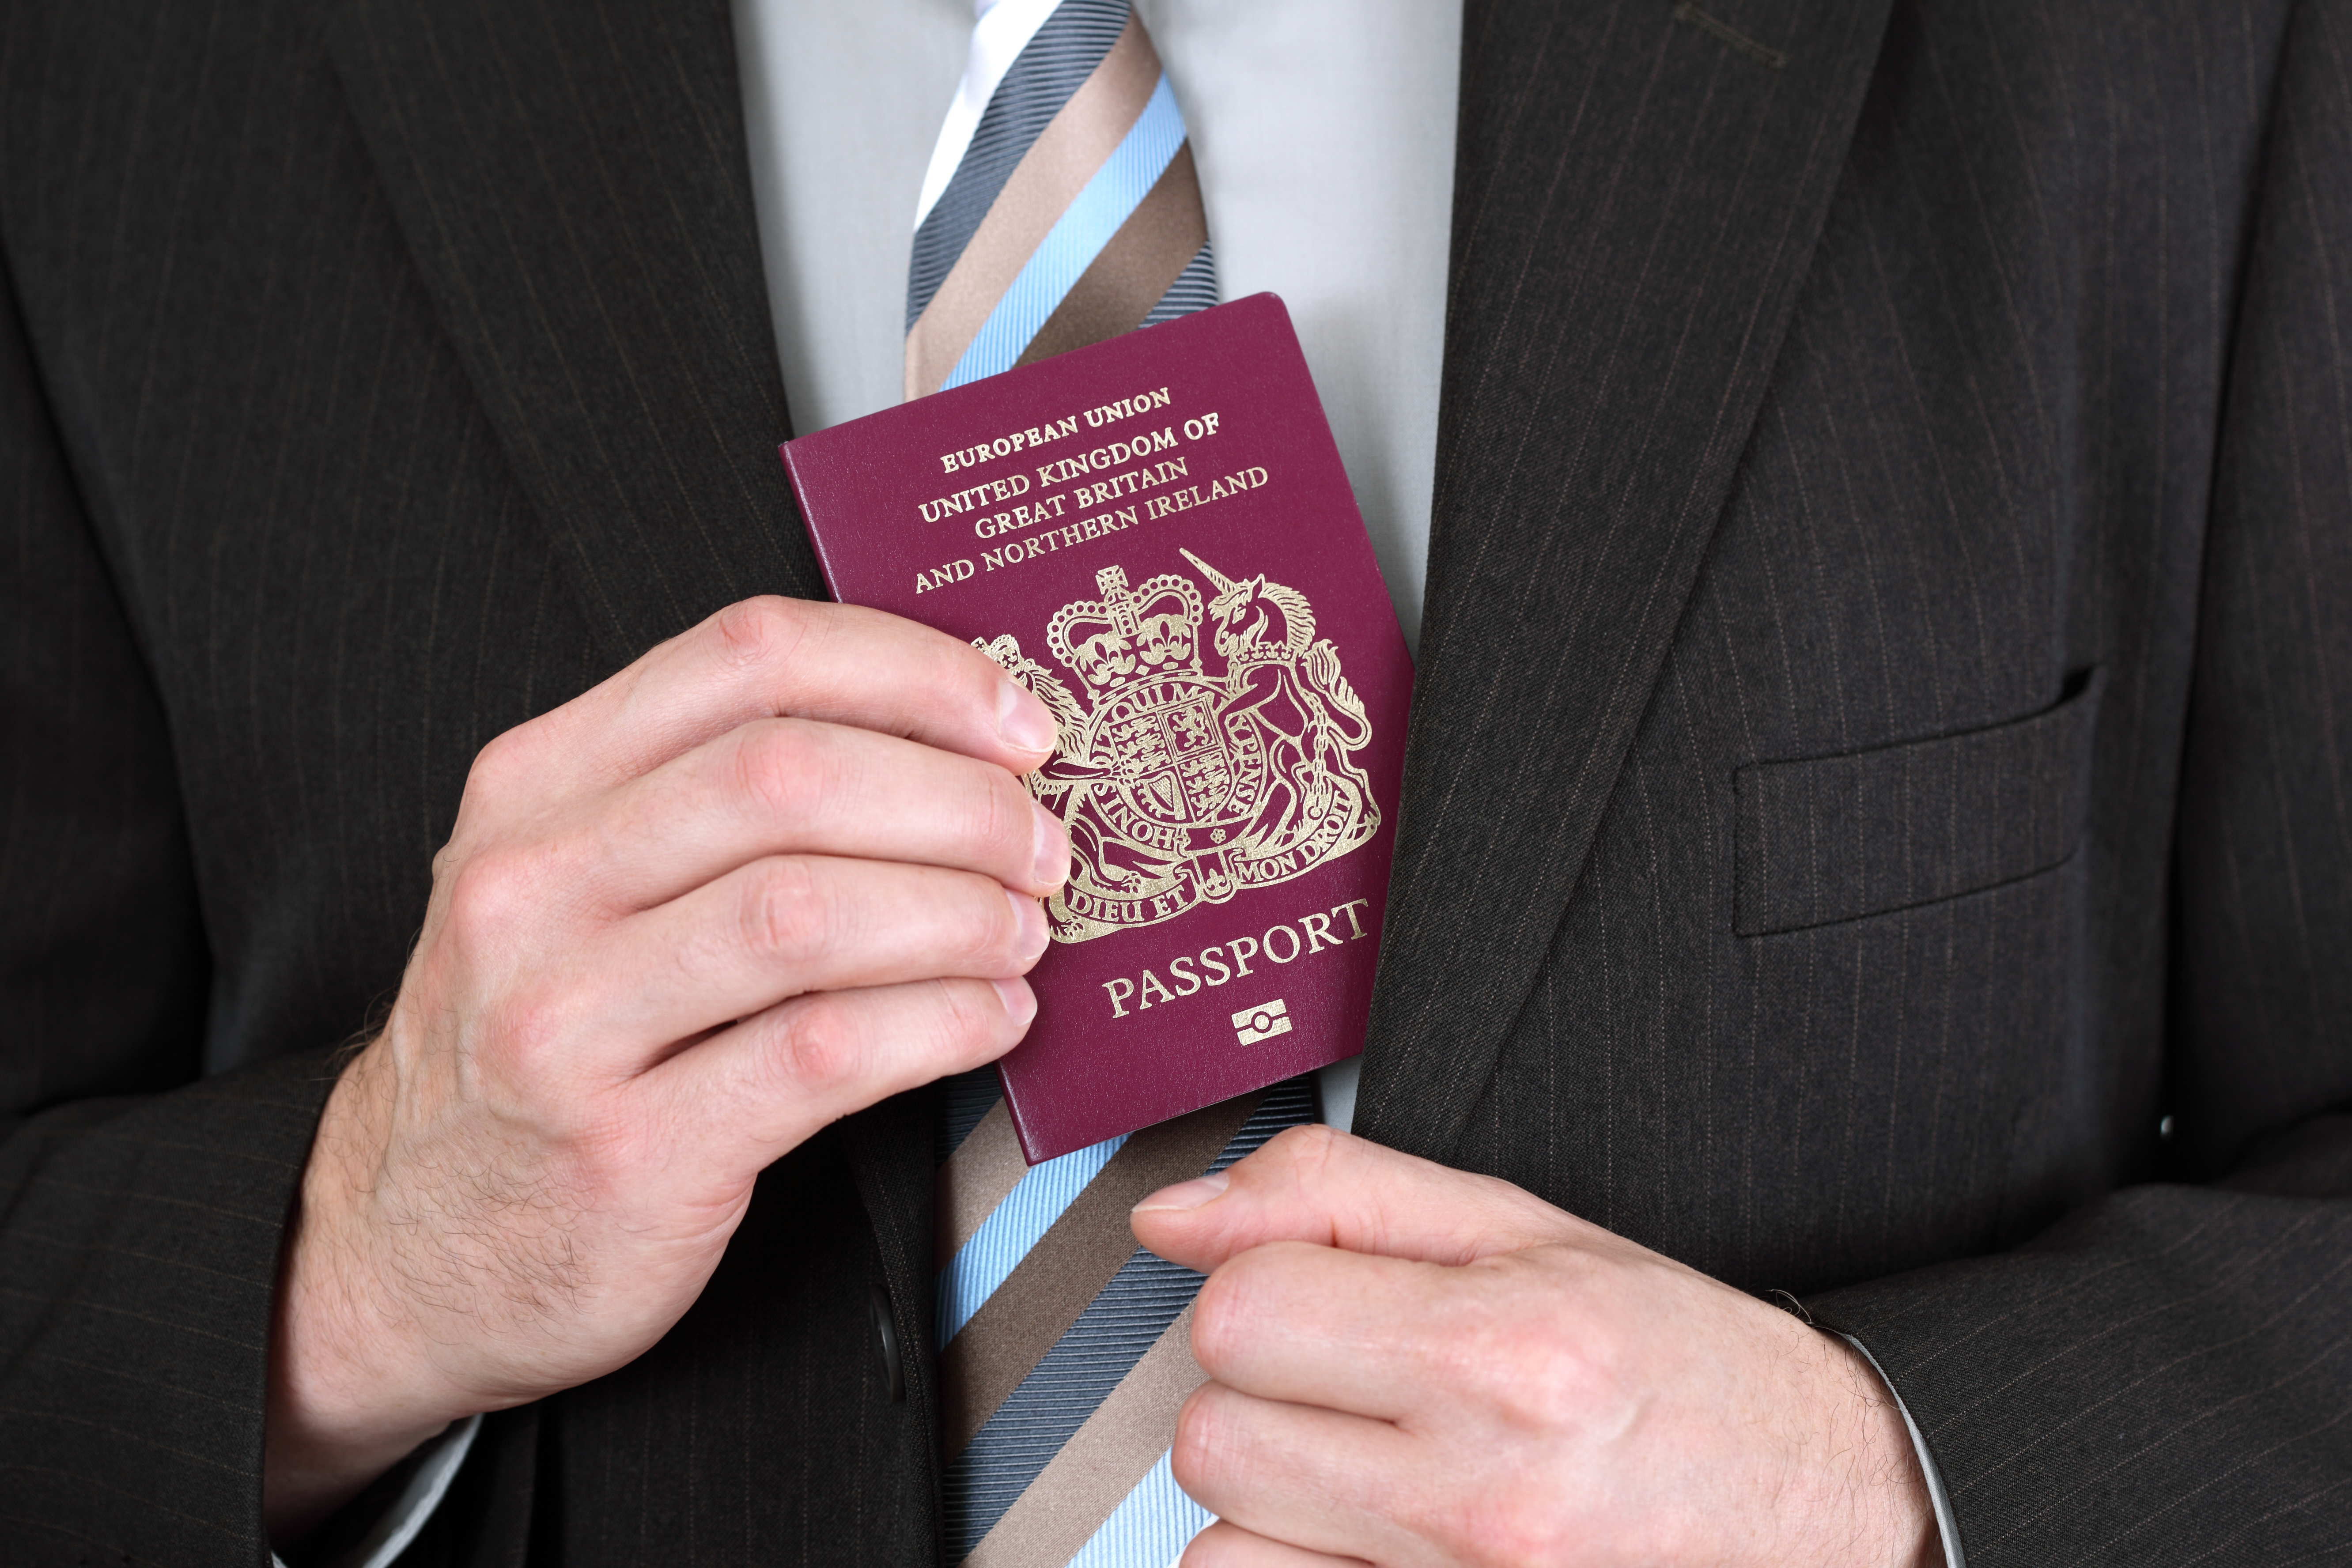 Passport of a resident of England obtained after applying for an innovator visa to the UK